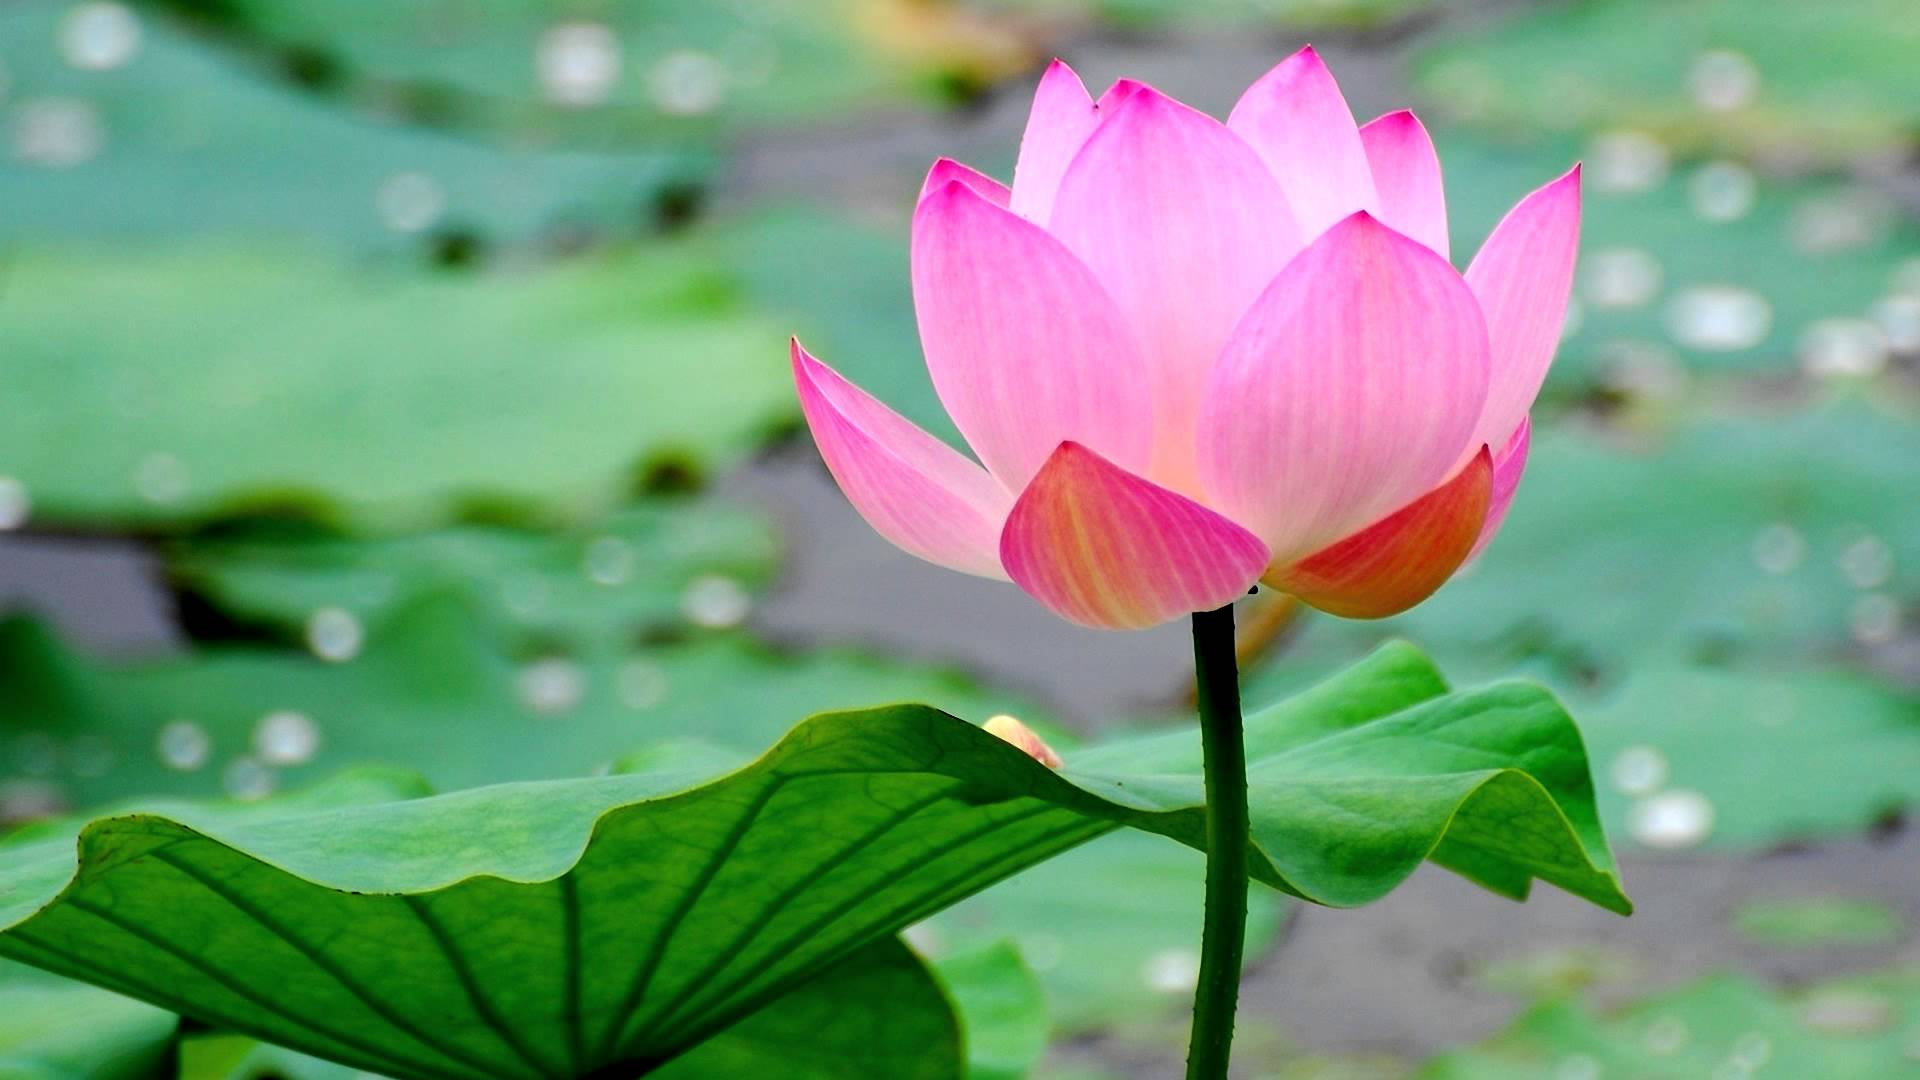 cafecbfed3d-lotus-flowers-pink-flowers-wallpaper-wp3801437